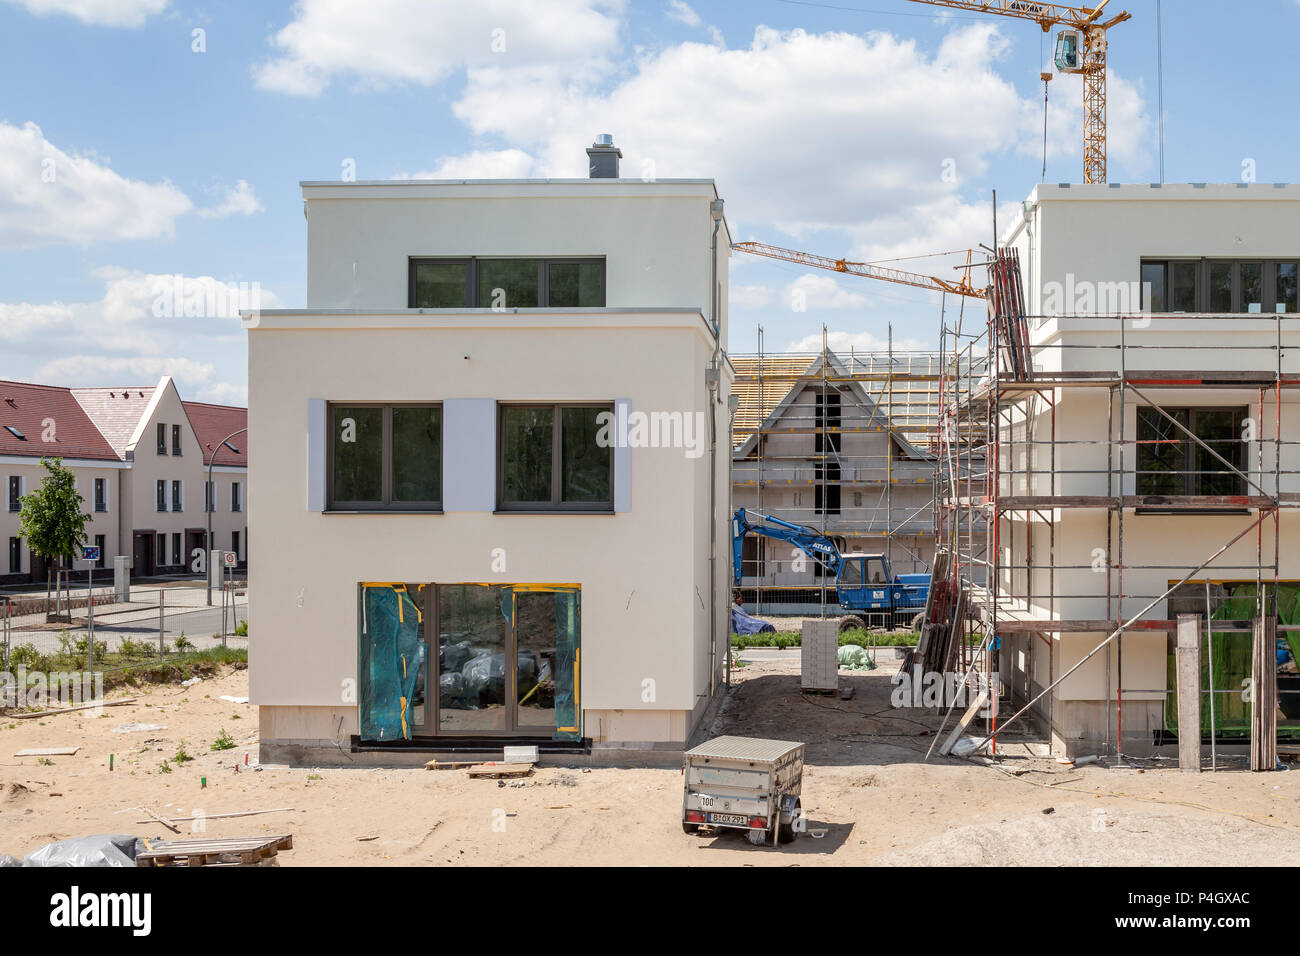 Berlin Karlshorst Stock Photos Images Alamy Building Detatched Wiring Diagram Germany New Detached Housing Estate Gartenstadt Image